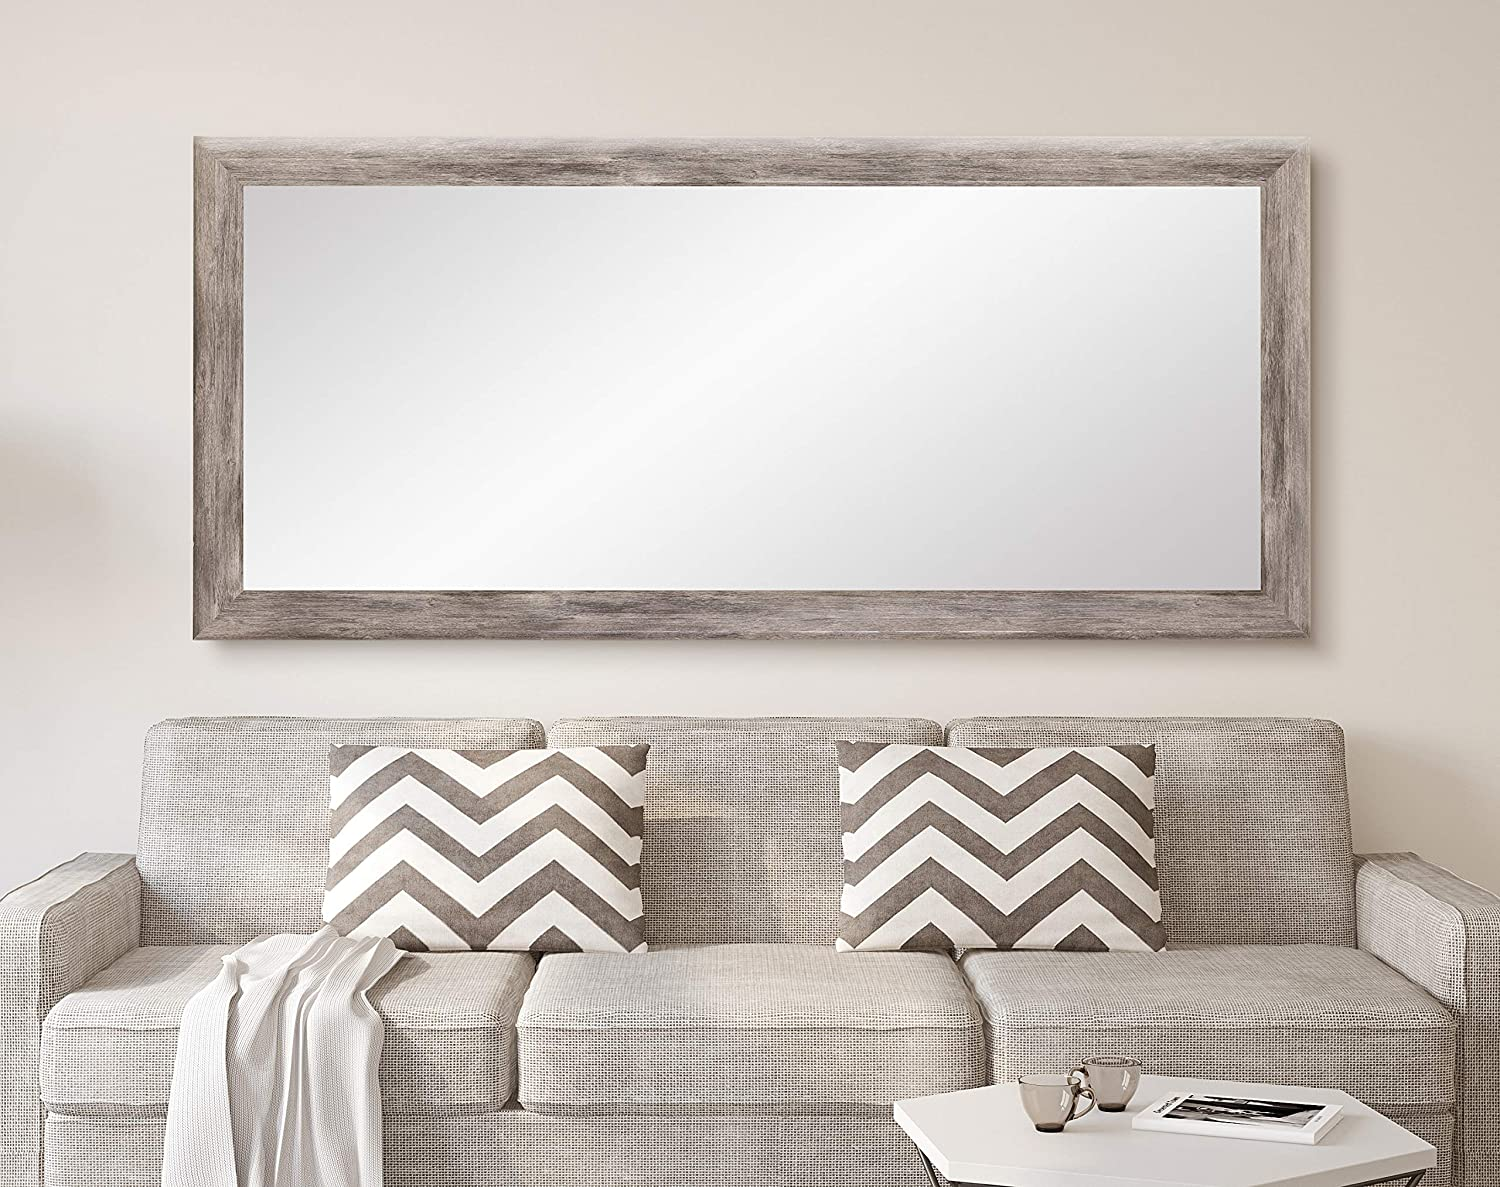 BrandtWorks Barn Wood Full Length Floor Vanity Wall Mirror, 33 x 67, Gray BM035TS